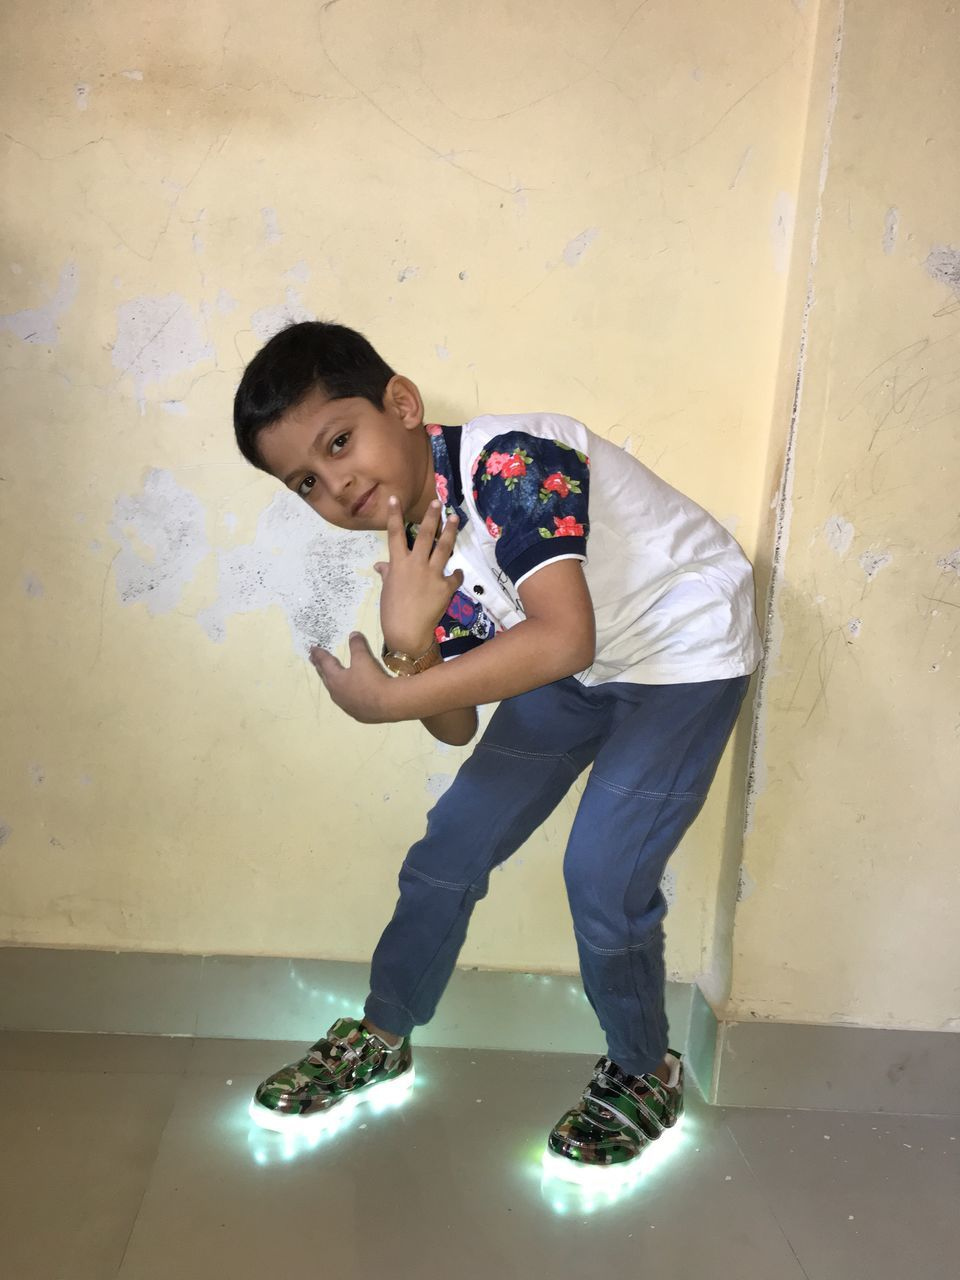 full length, casual clothing, one person, childhood, looking at camera, standing, elementary age, indoors, real people, portrait, leisure activity, playing, lifestyles, happiness, boys, smiling, day, young adult, people